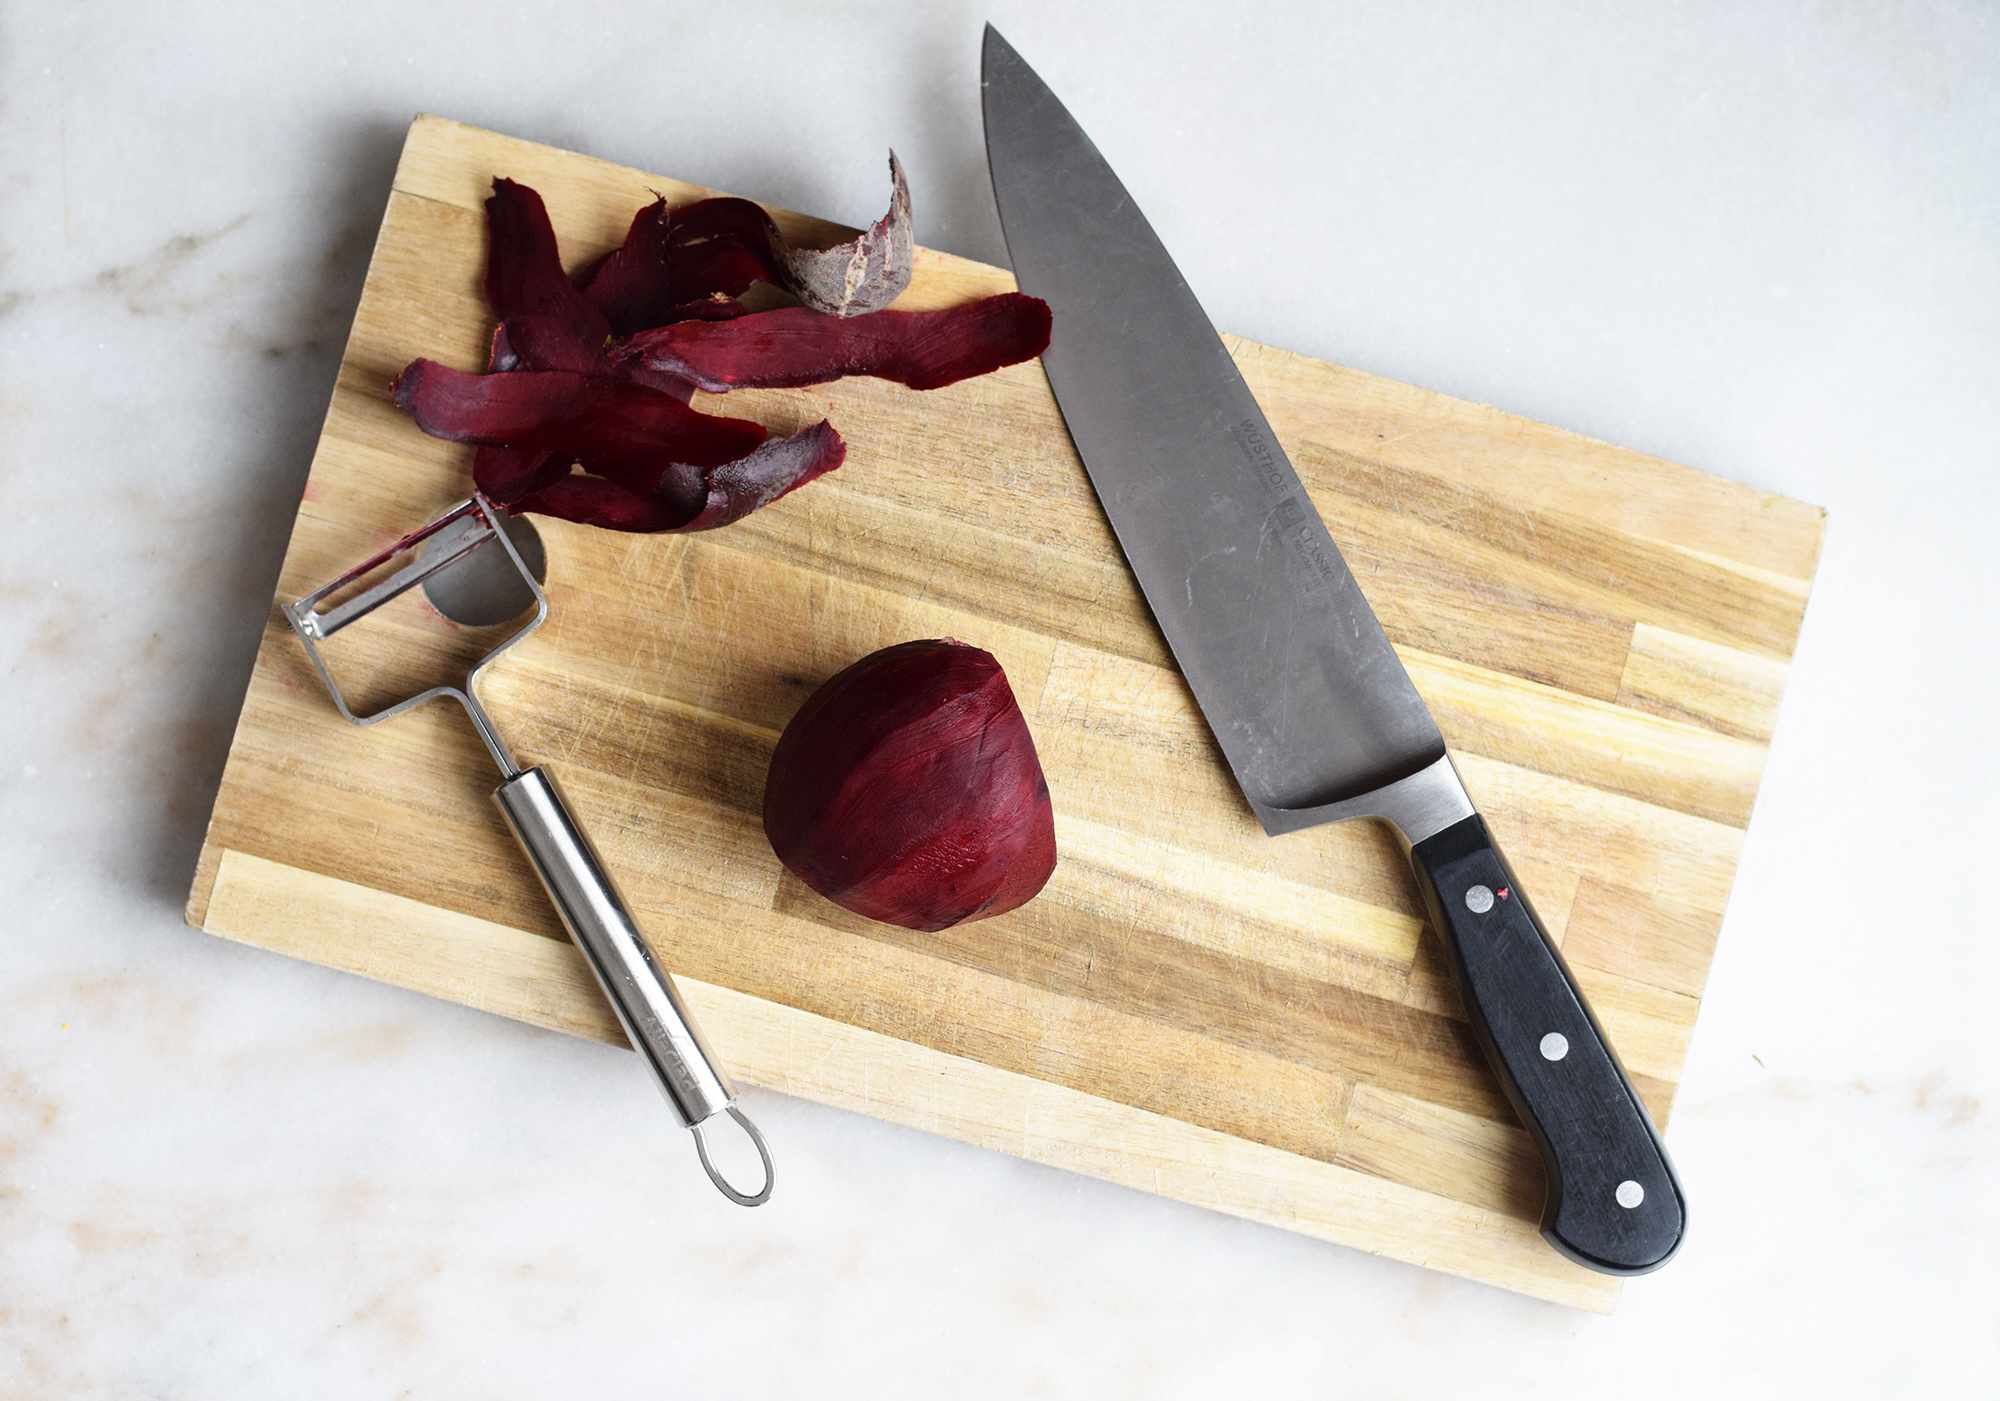 peeled raw beets on a cutting board